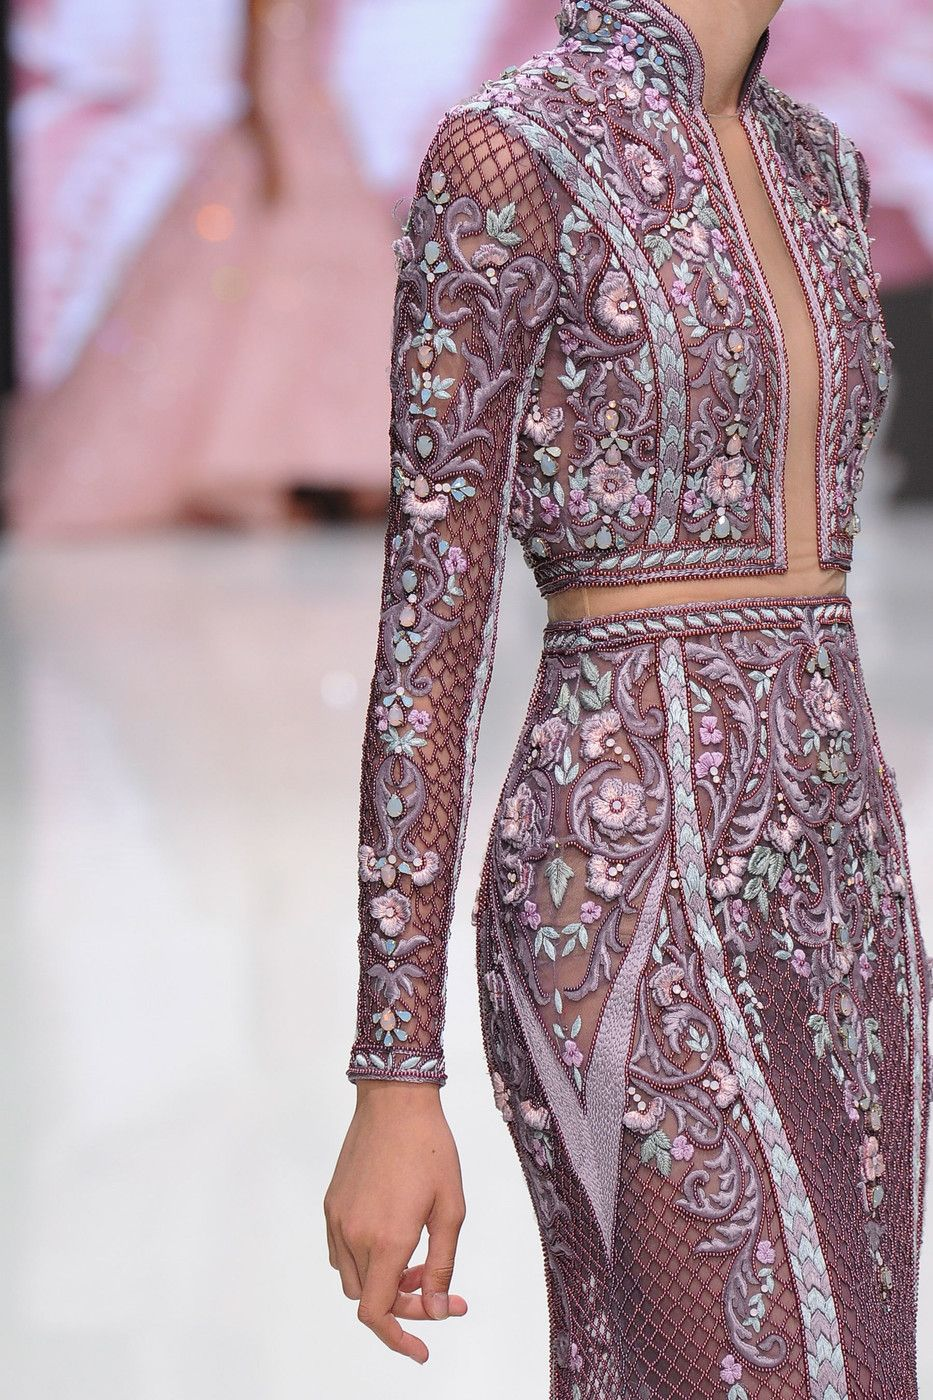 Fall 2016 At Couture Couturissimo In 2019Fashion thrdQs